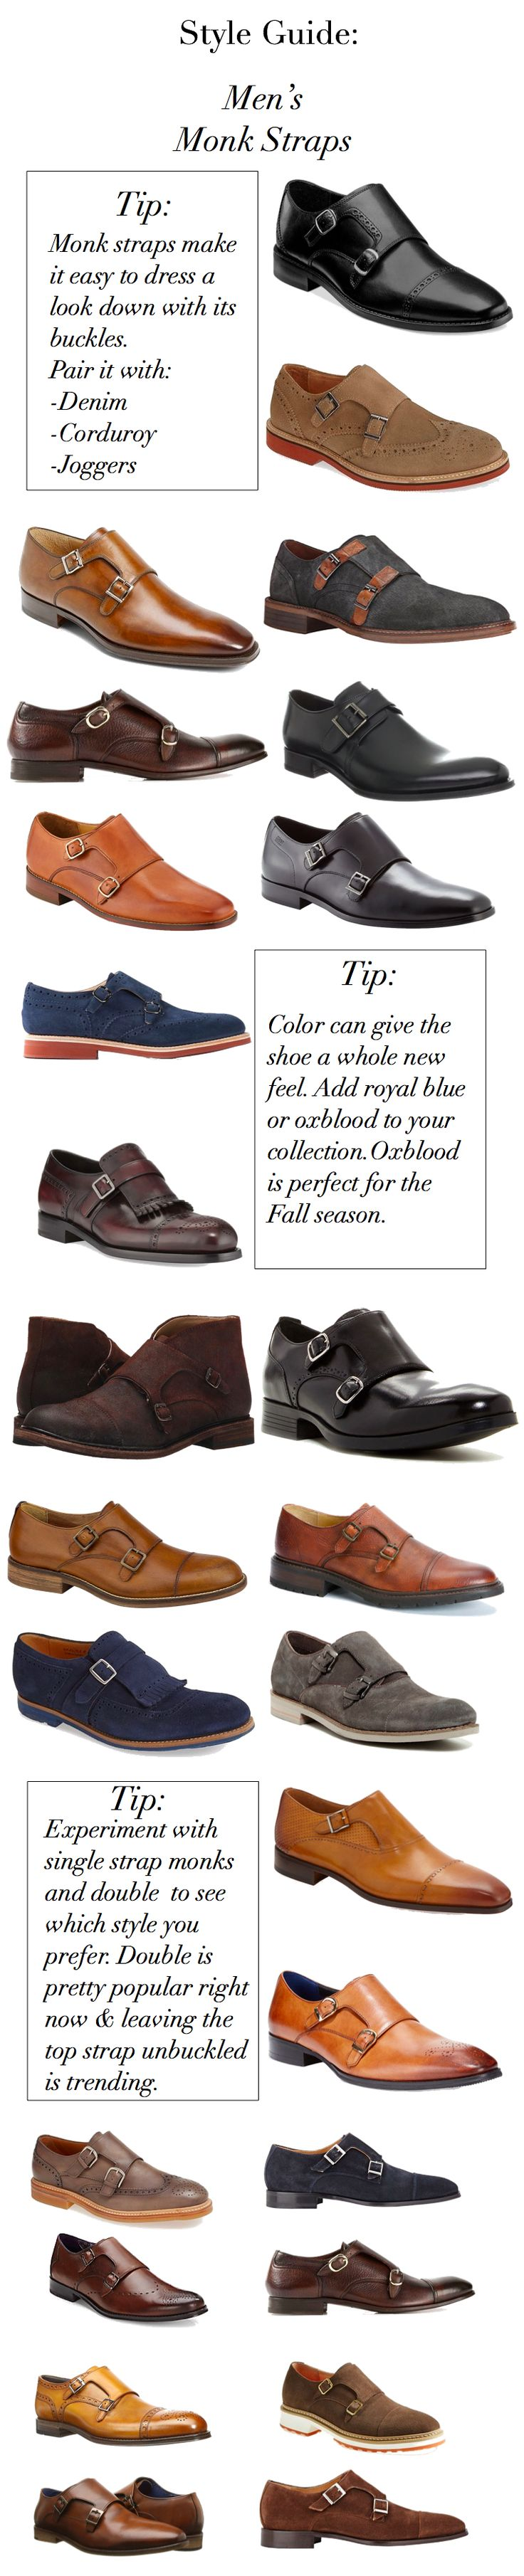 Style Guide: 25+ Monk Strap Shoes At All Price Points #menswear